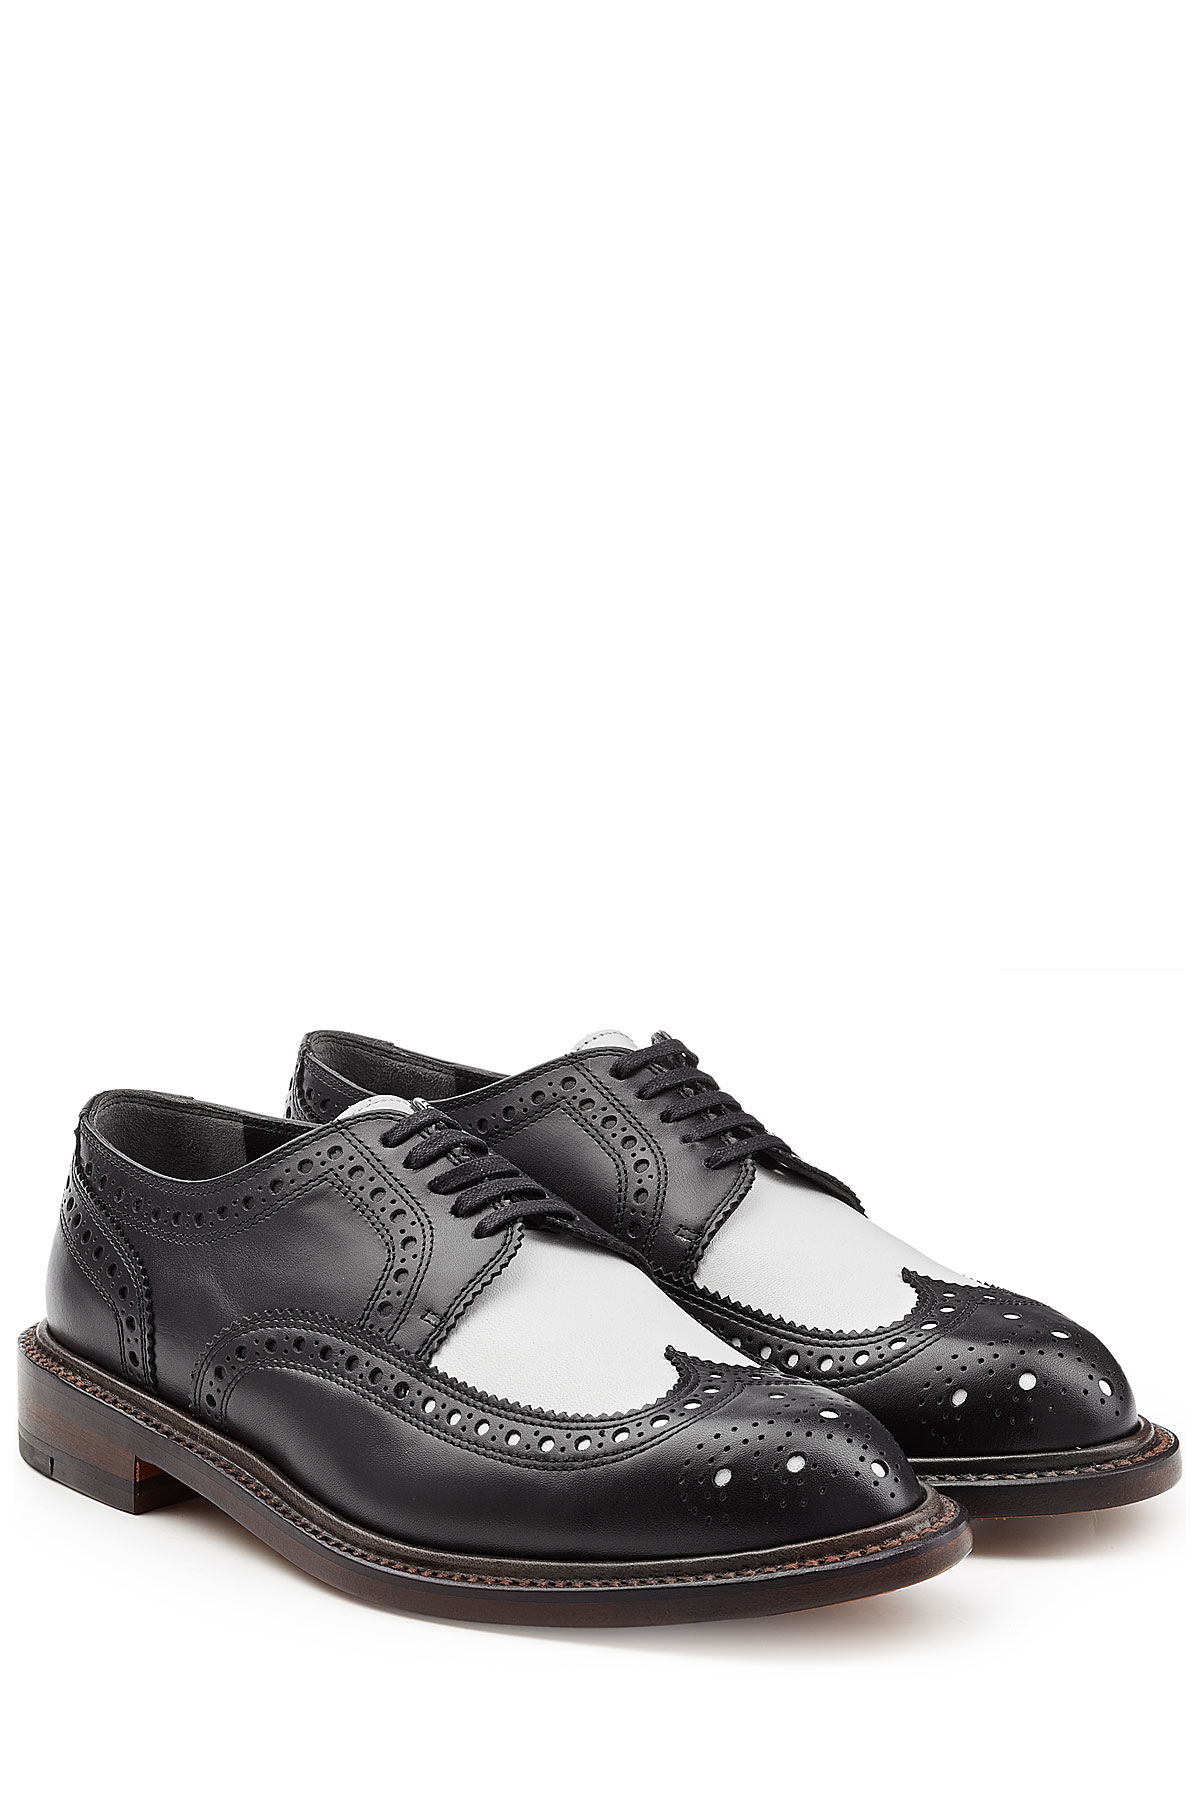 Mens Shoes Robert Clergerie